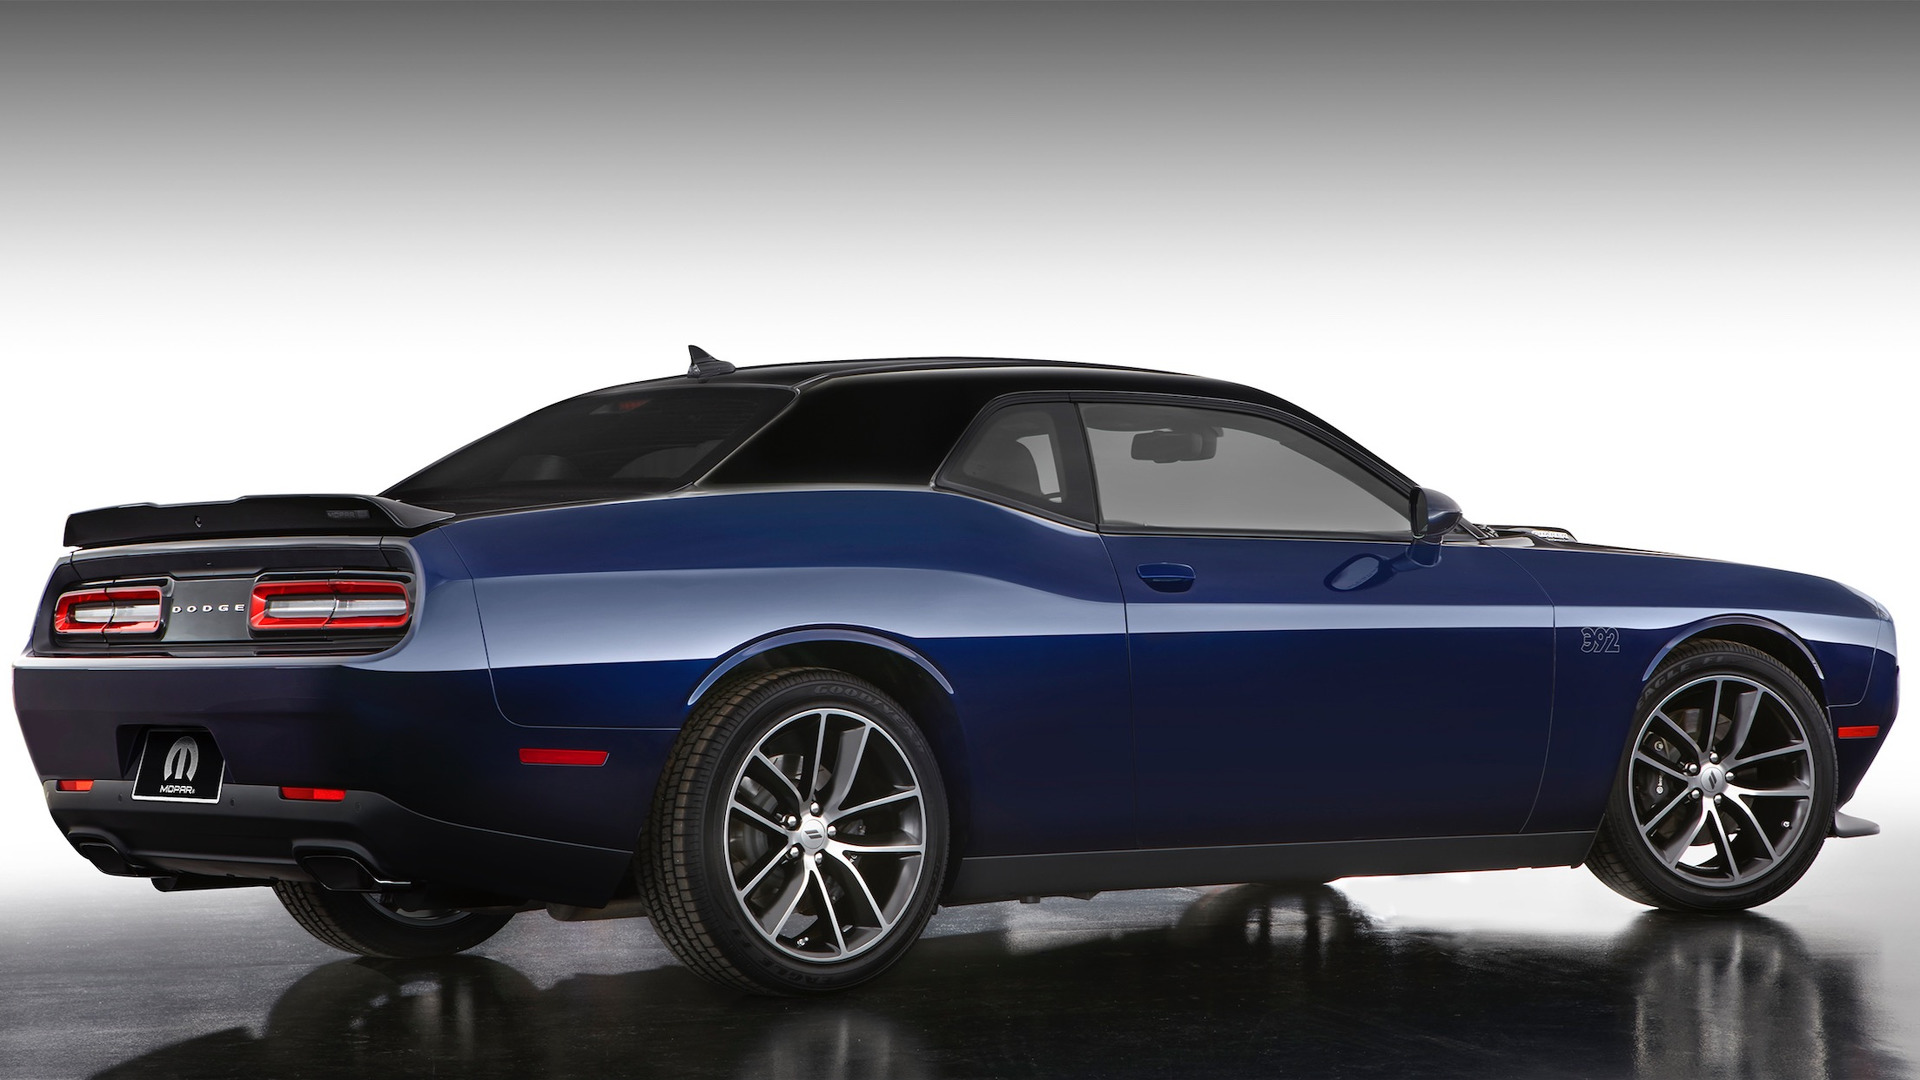 Mopar '17 Dodge Challenger Celebrates 80 Years of Aftermarket Brand